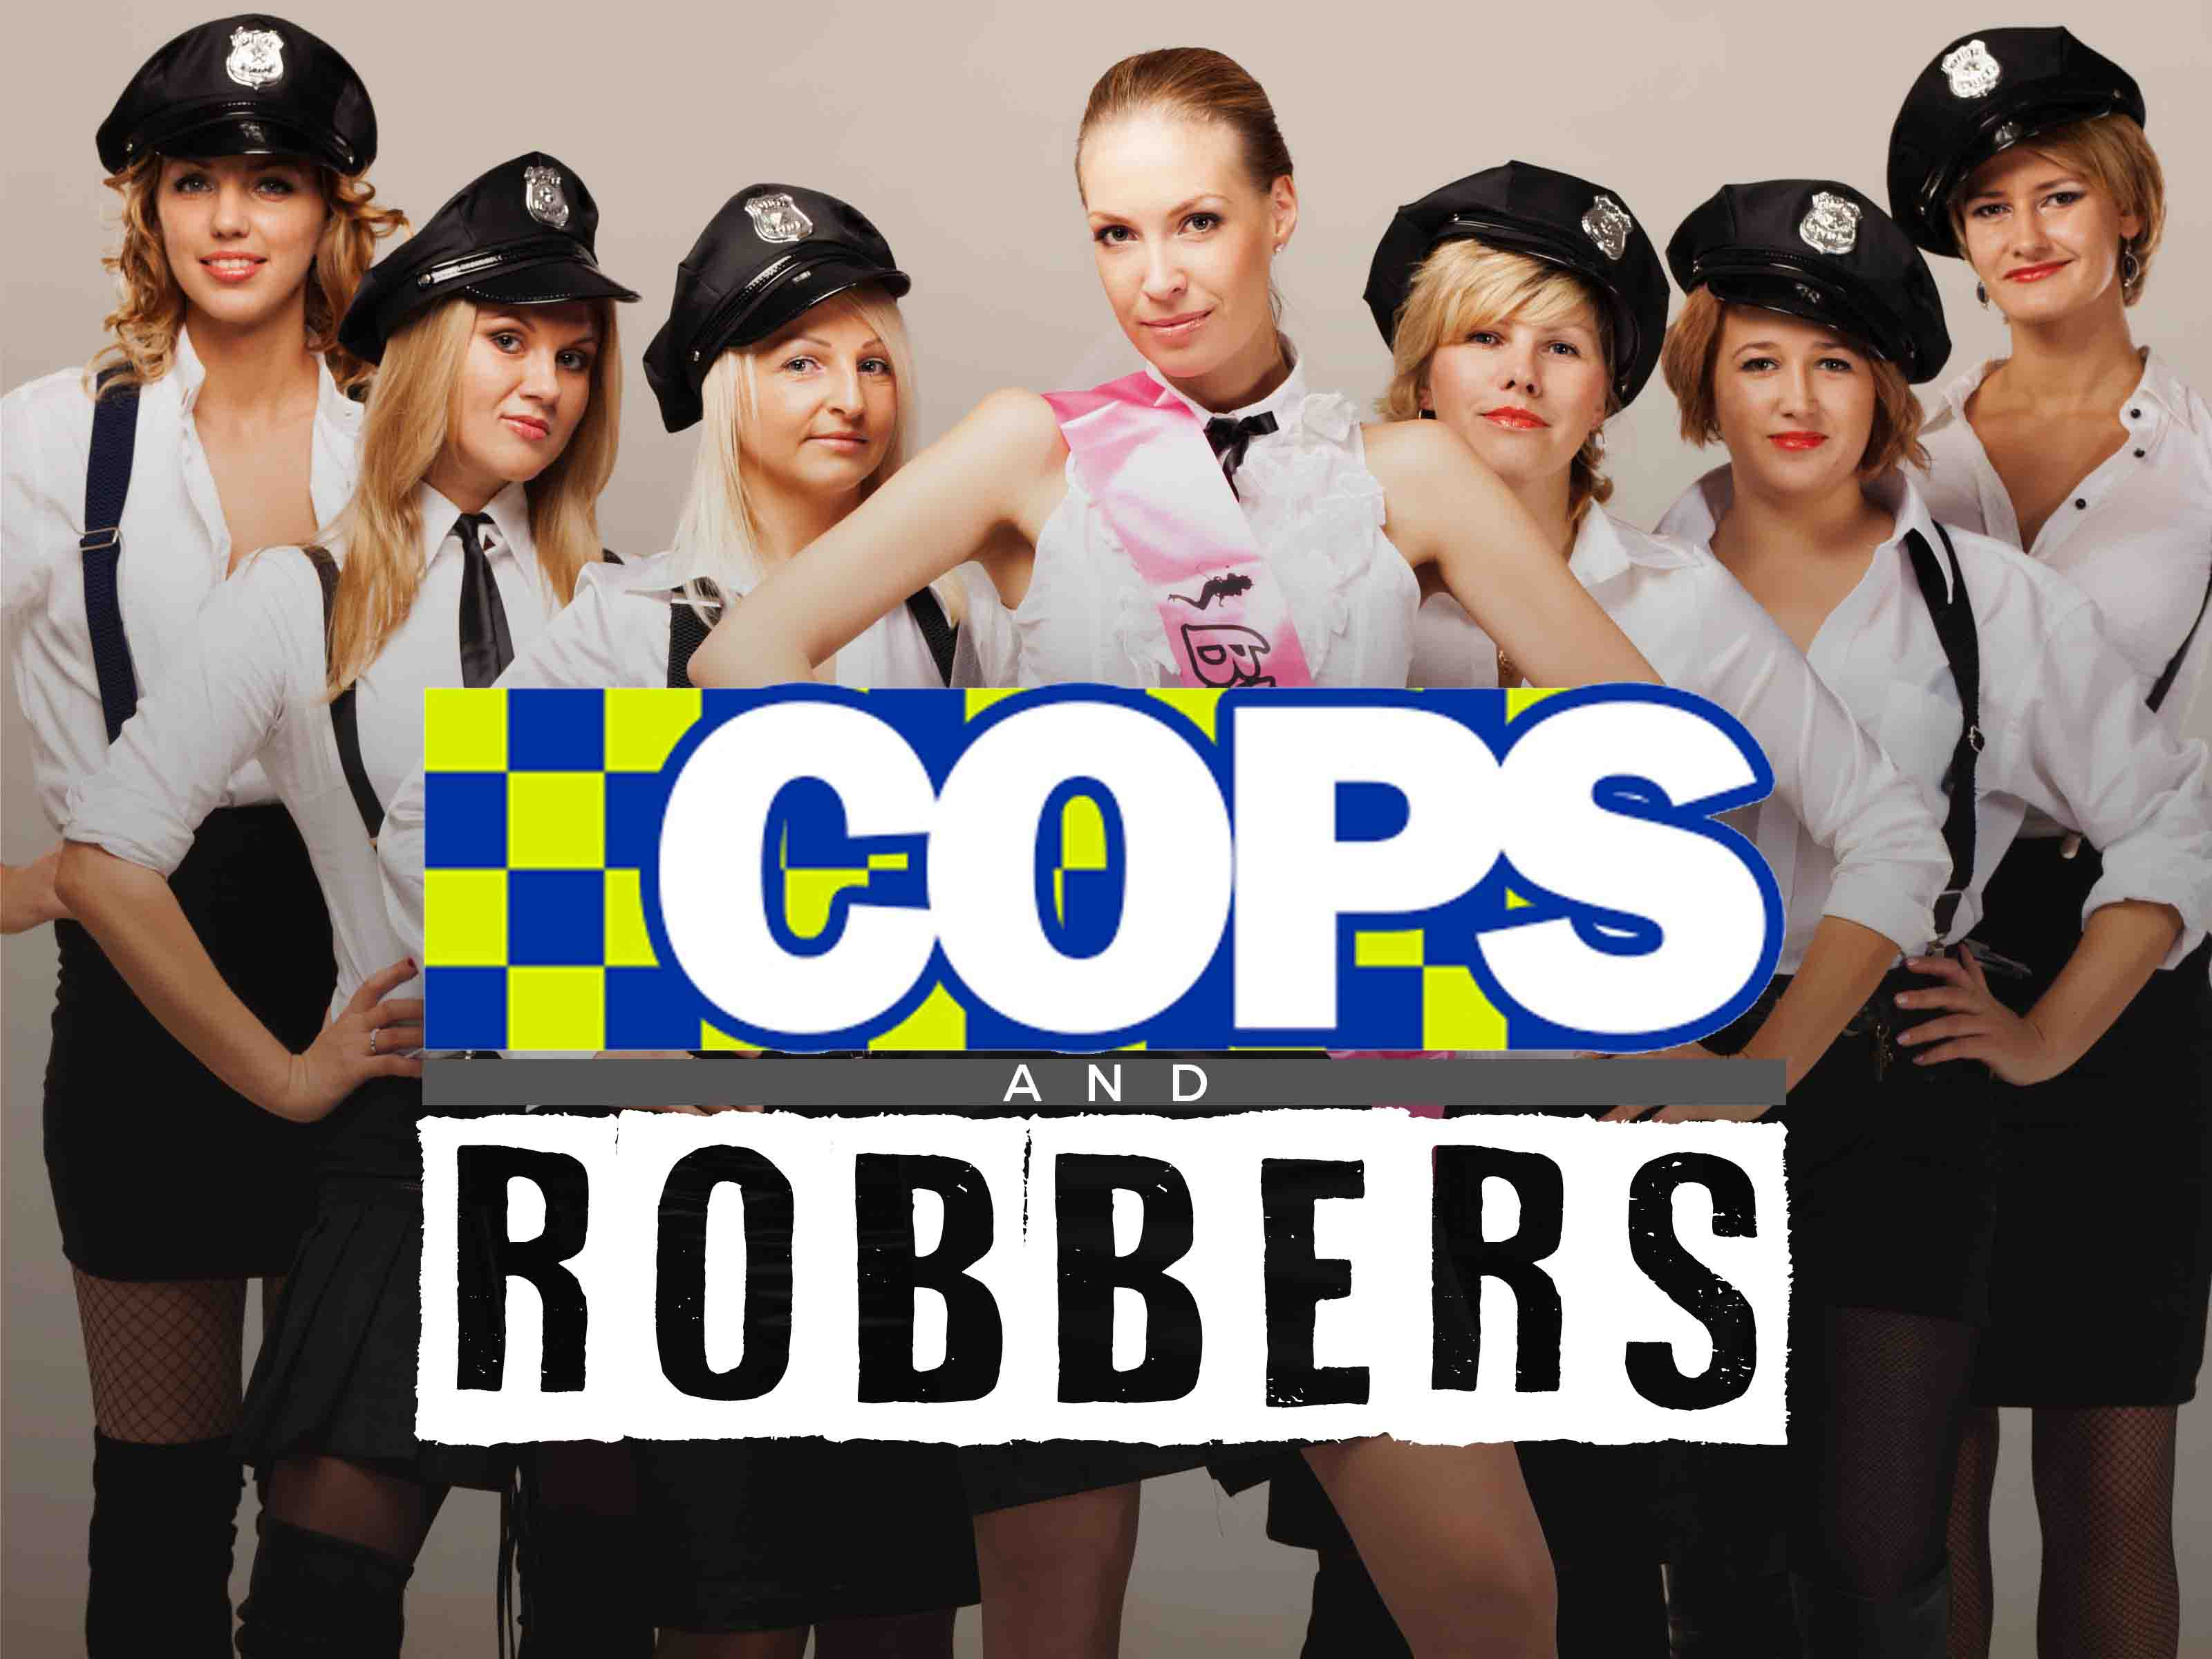 Hen Party Themes - Cops & Robbers